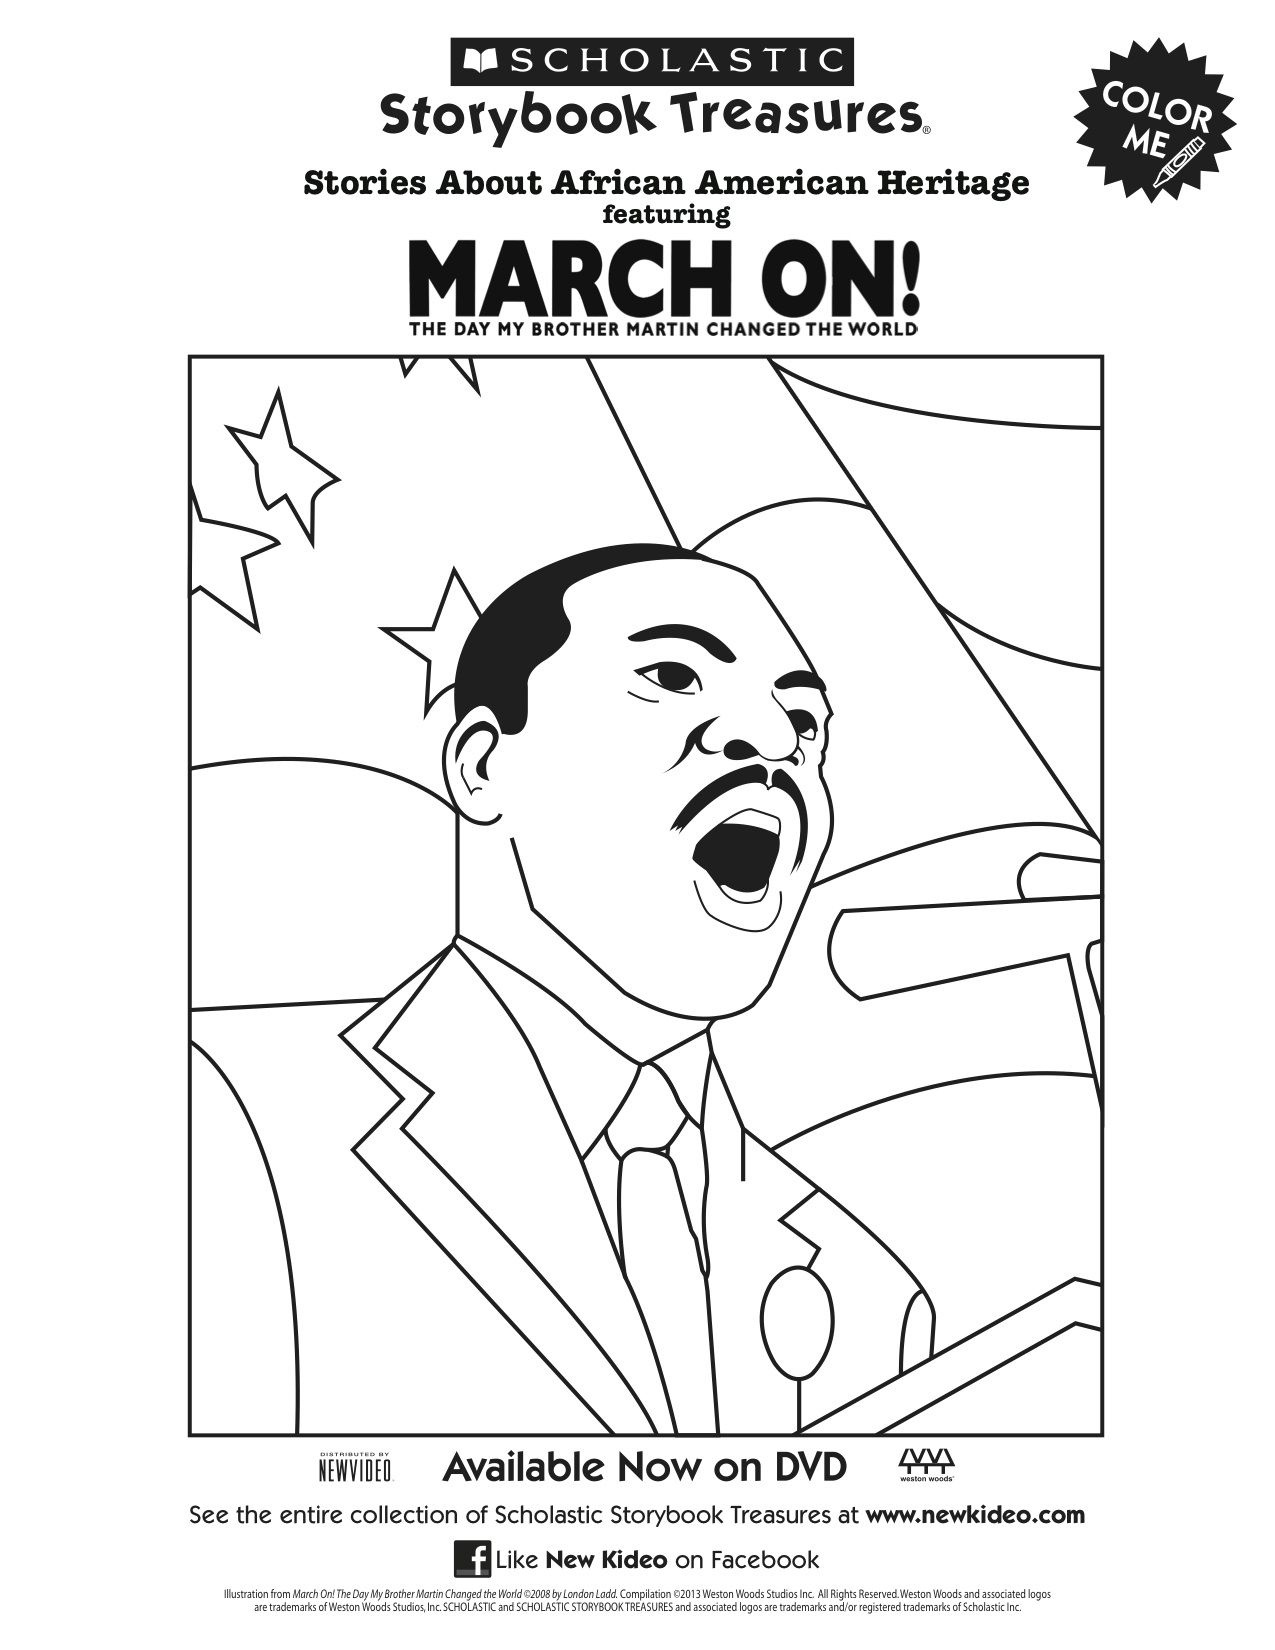 Martin Luther King Free Printable Coloring Pages | Free ...